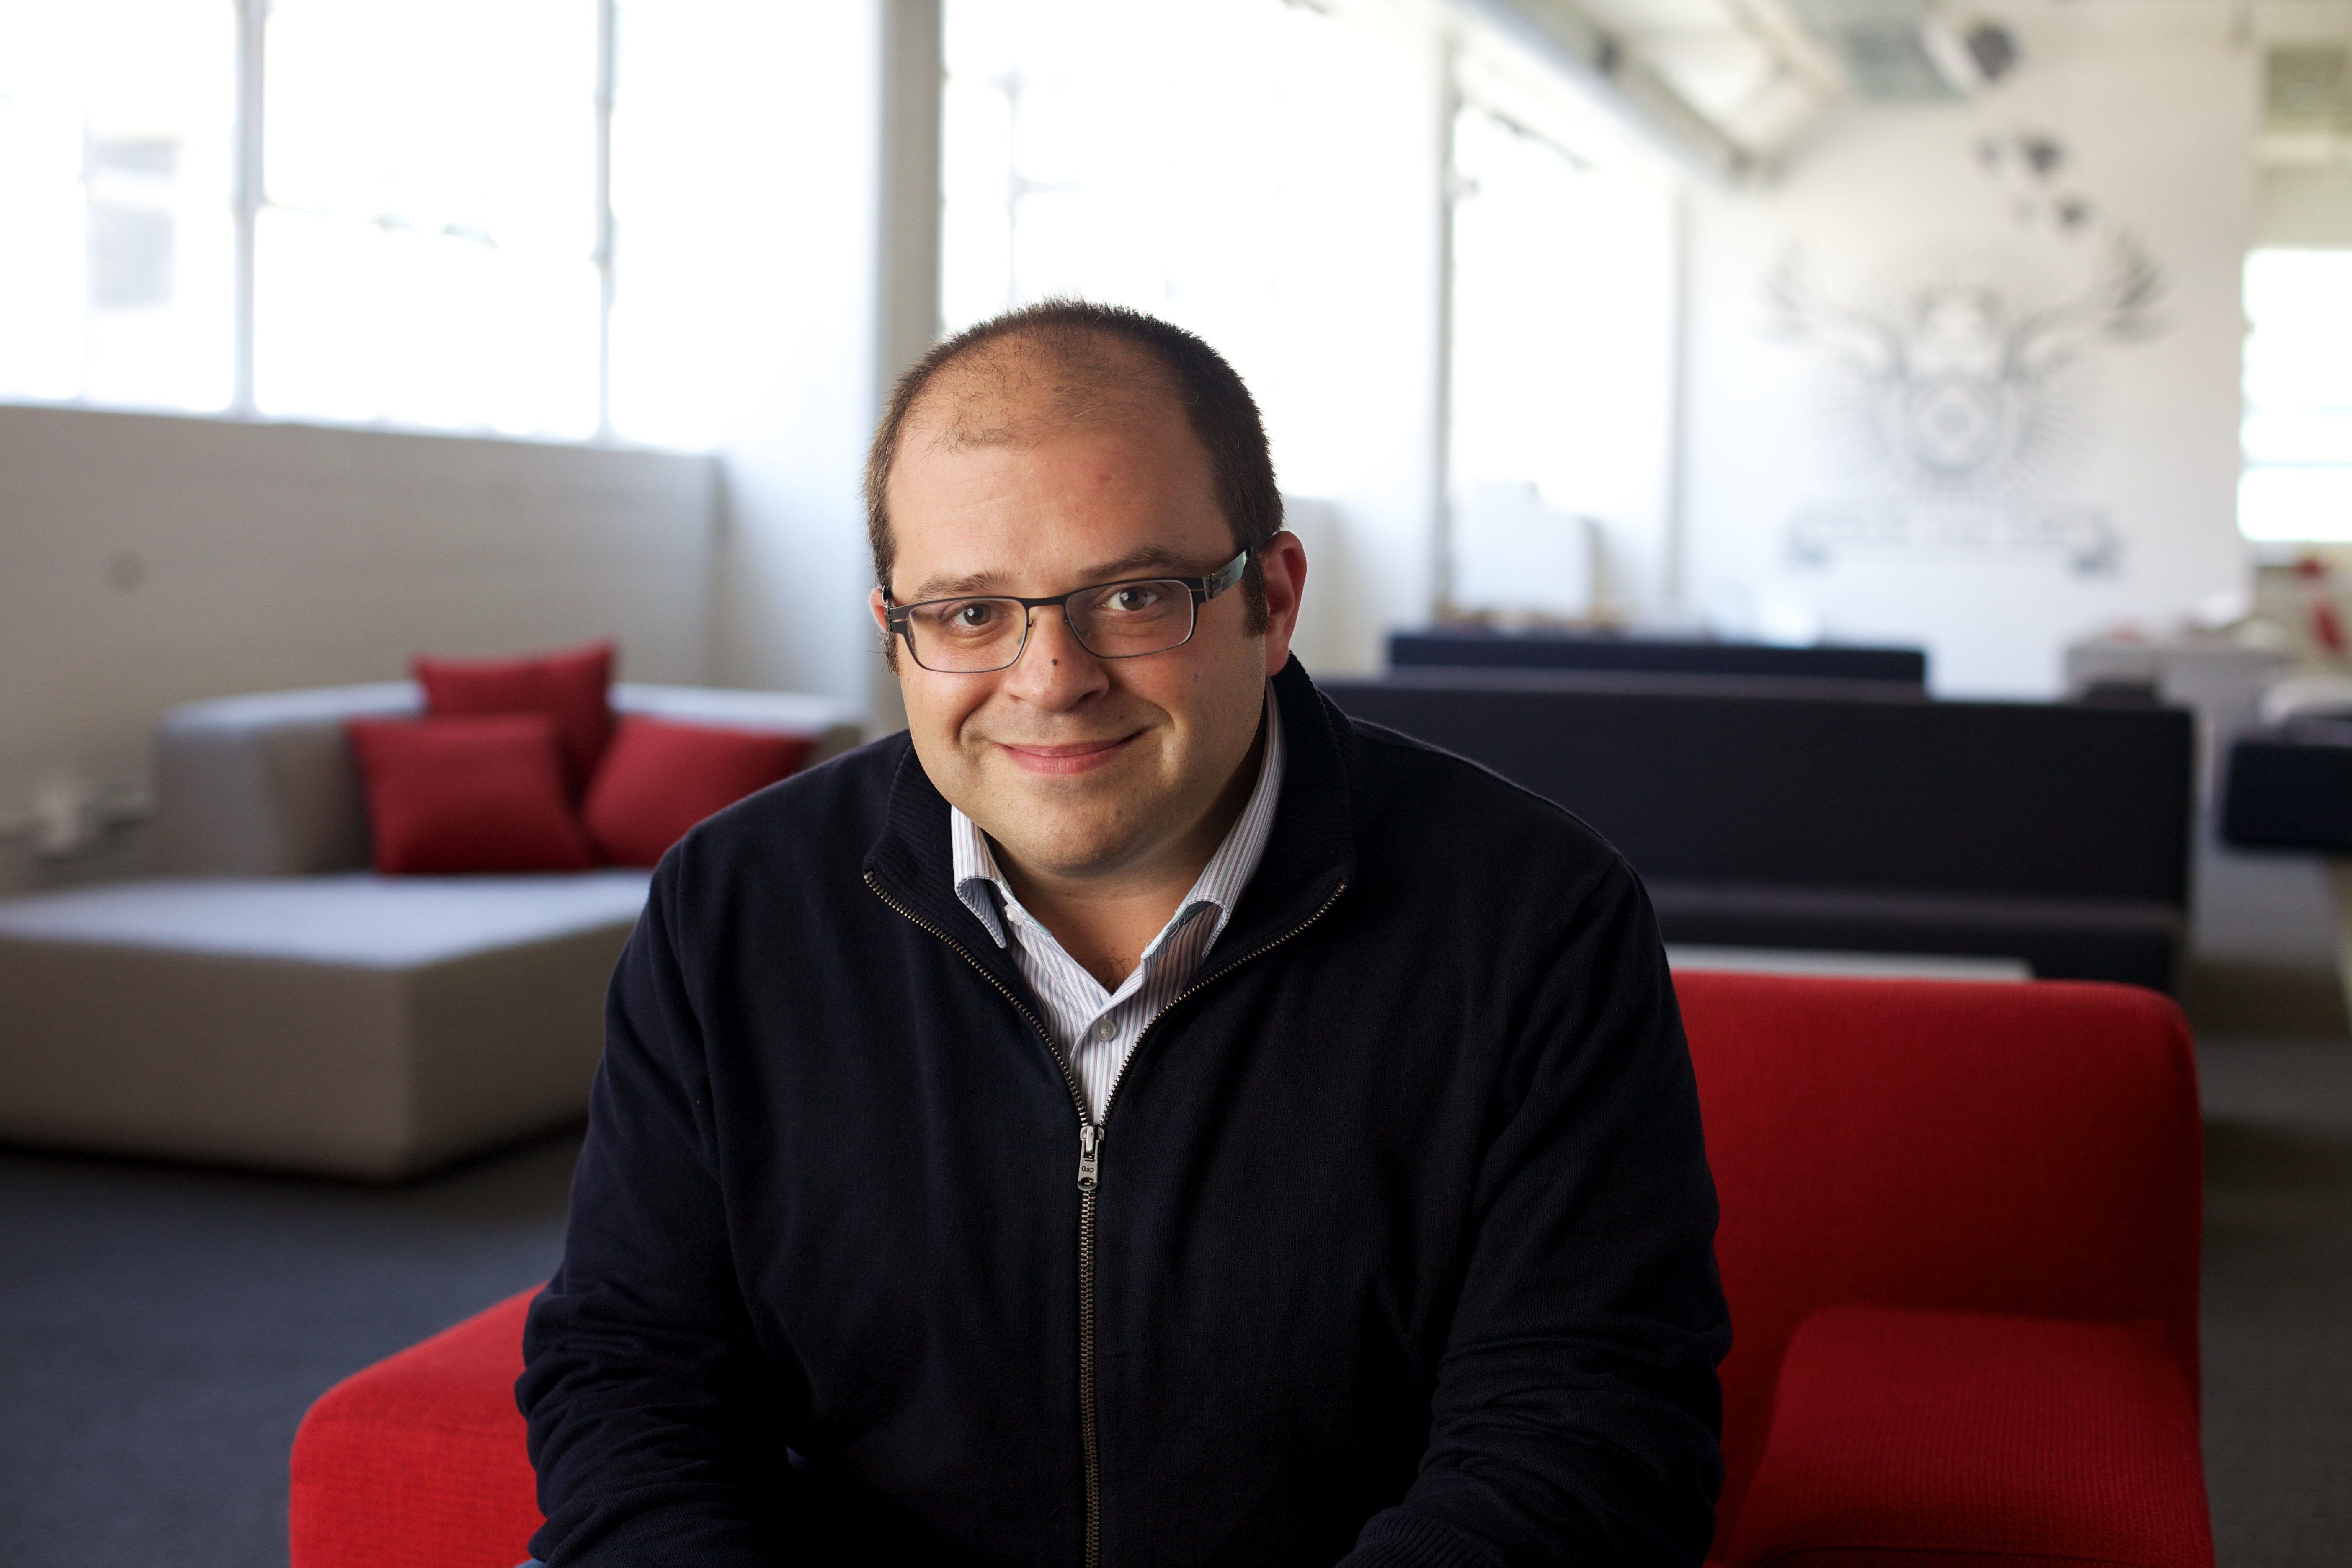 Jeff Lawson, CEO and cofounder of Twilio